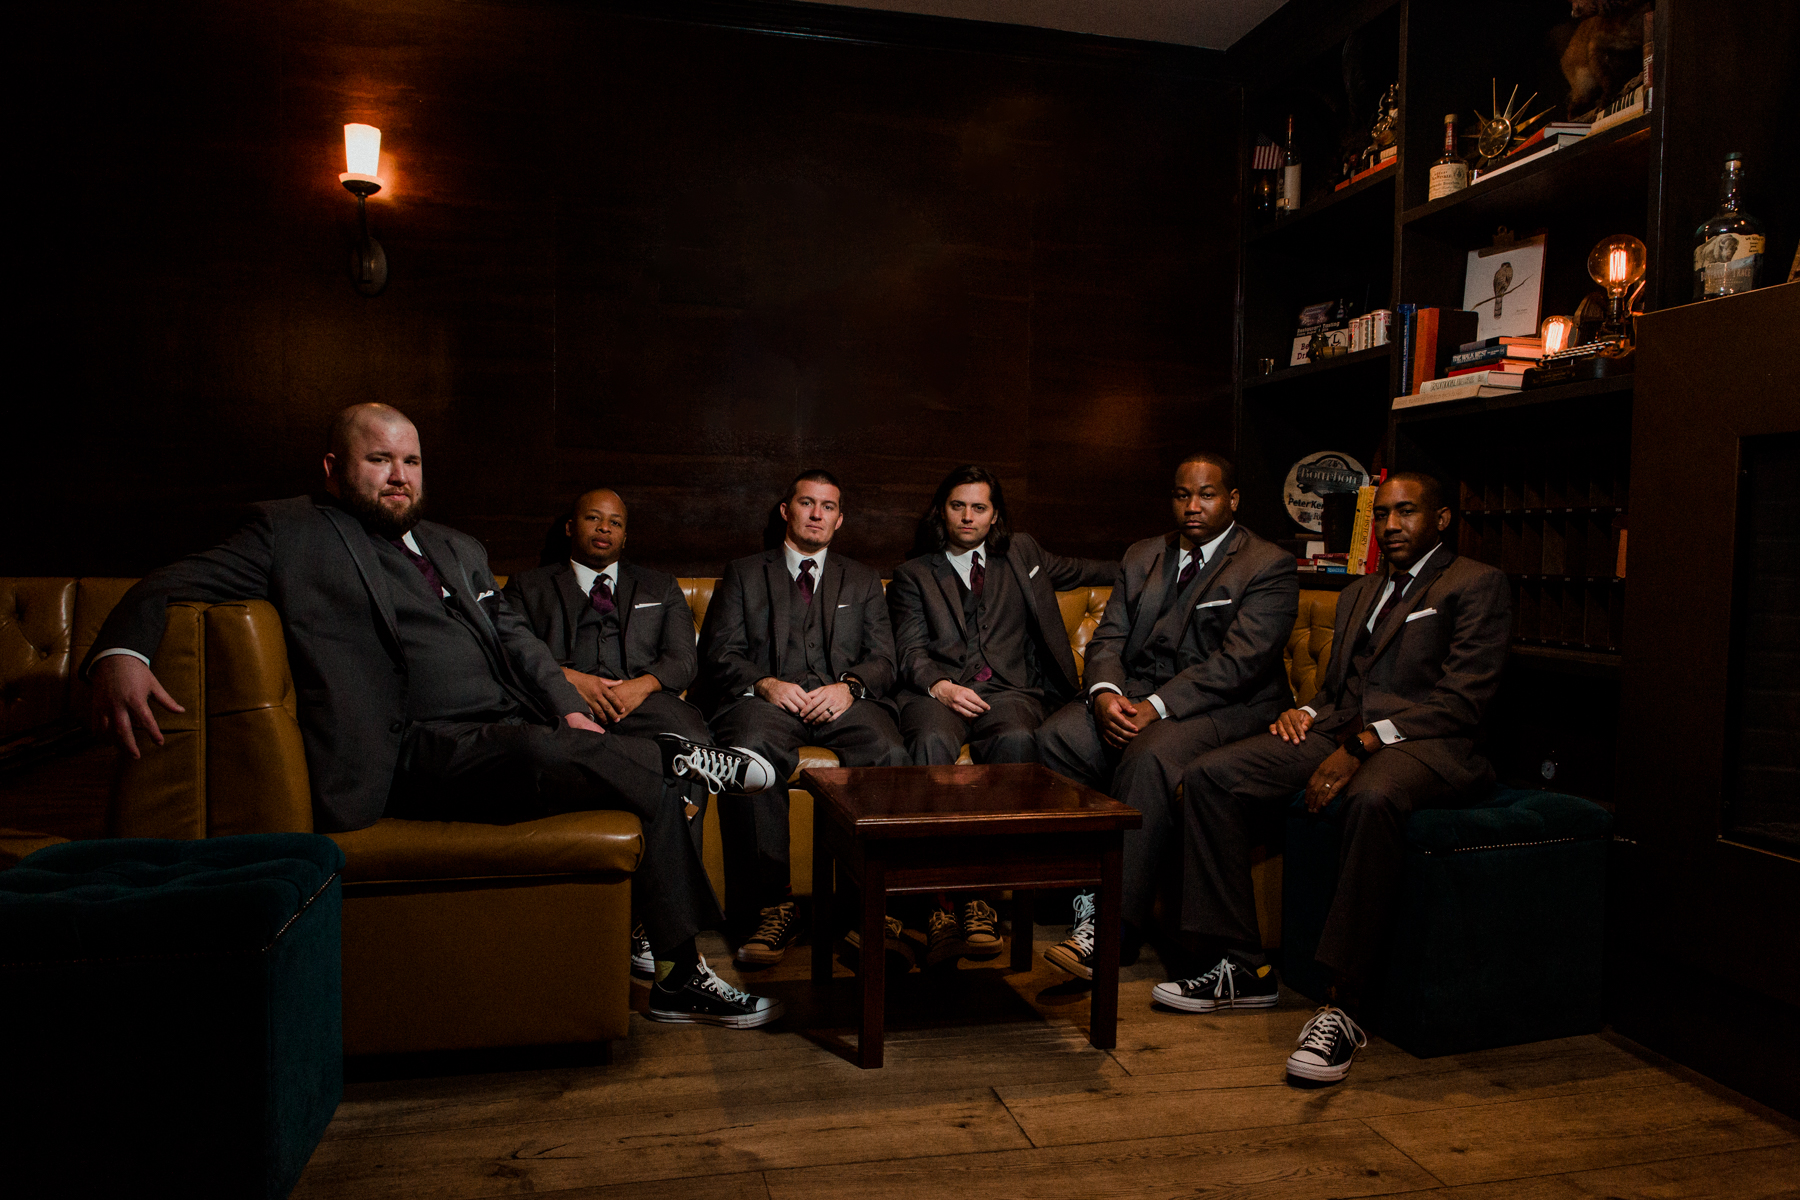 Groomsmen_Peter_Kern_Library_Bar-6.jpg